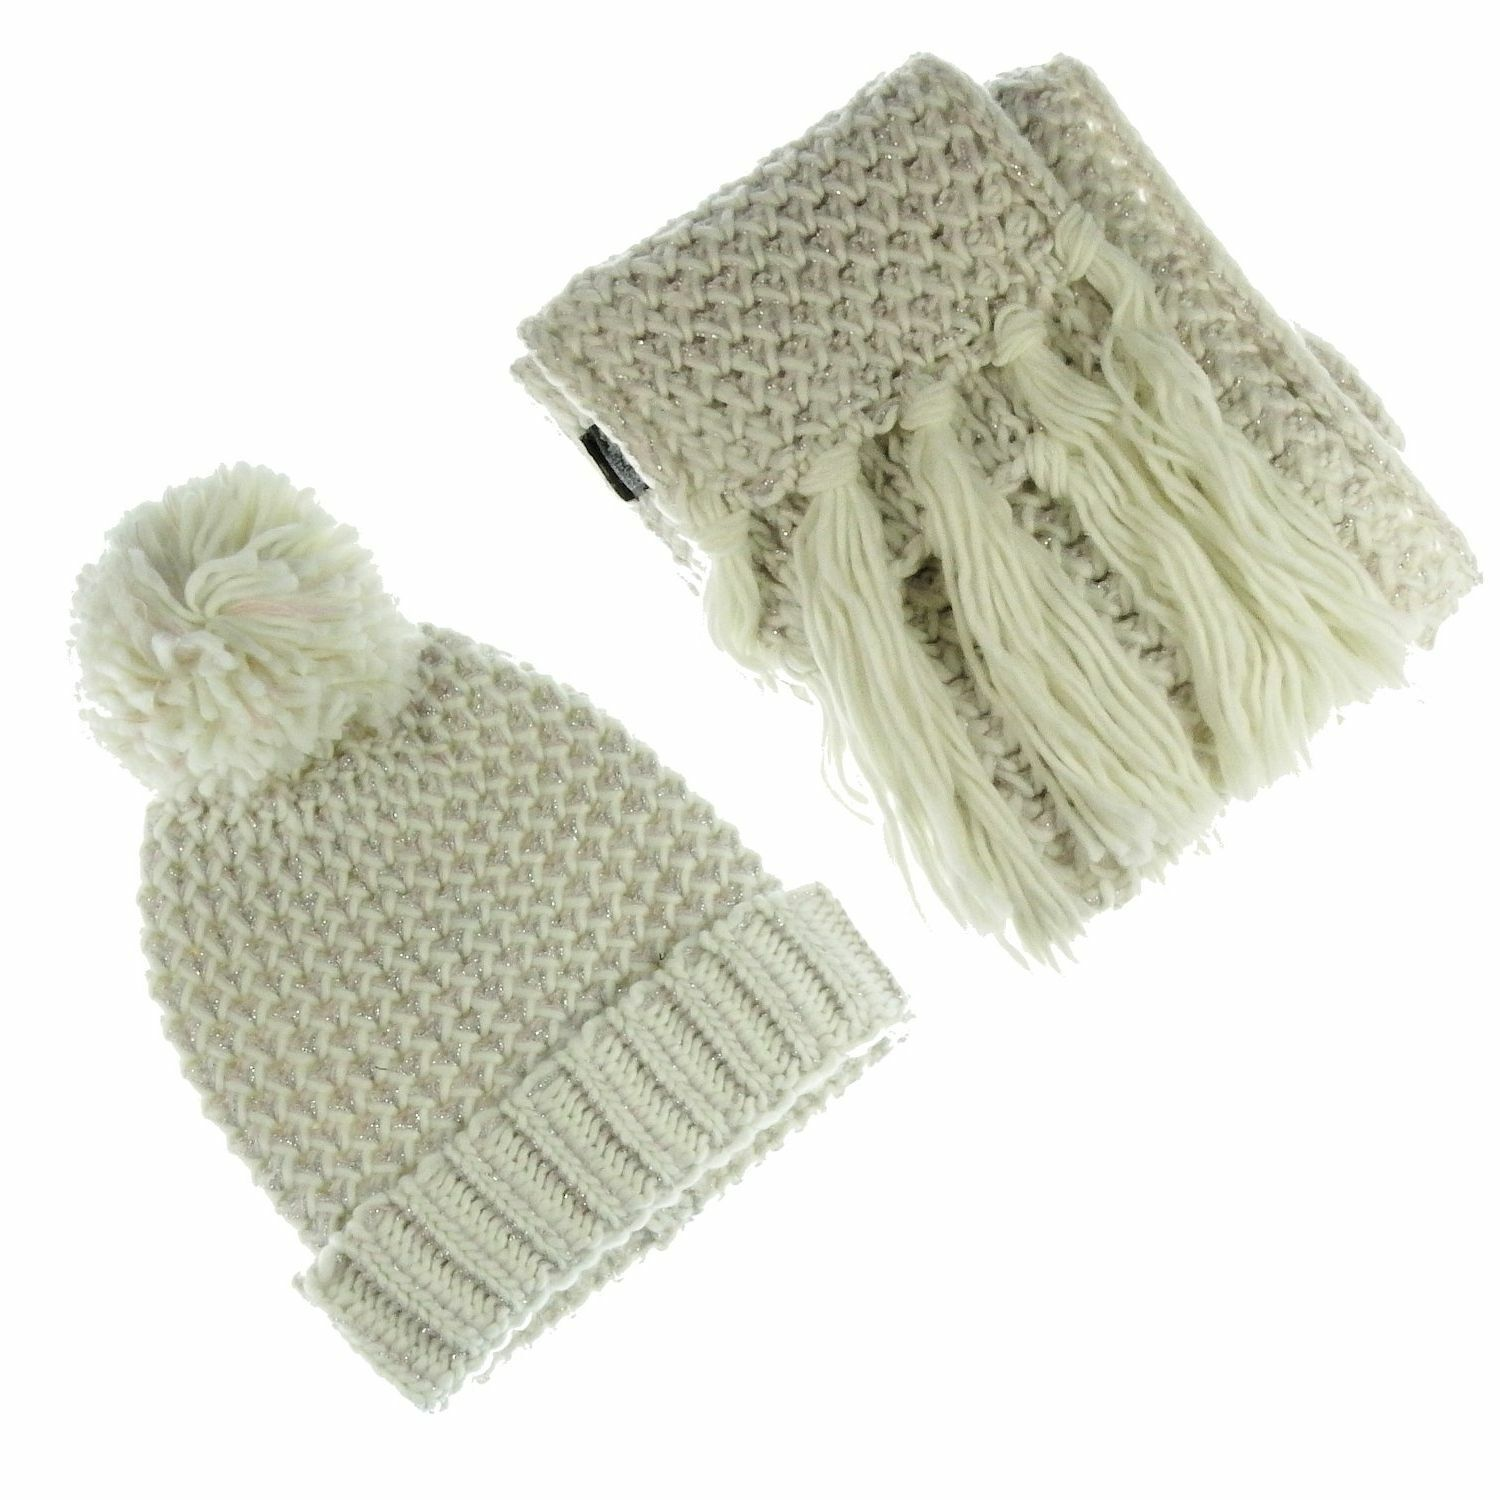 Euphyllia Libby Knitted Ladies Hat & Scarf Set with Lurex Oatmeal/Pink (b946)